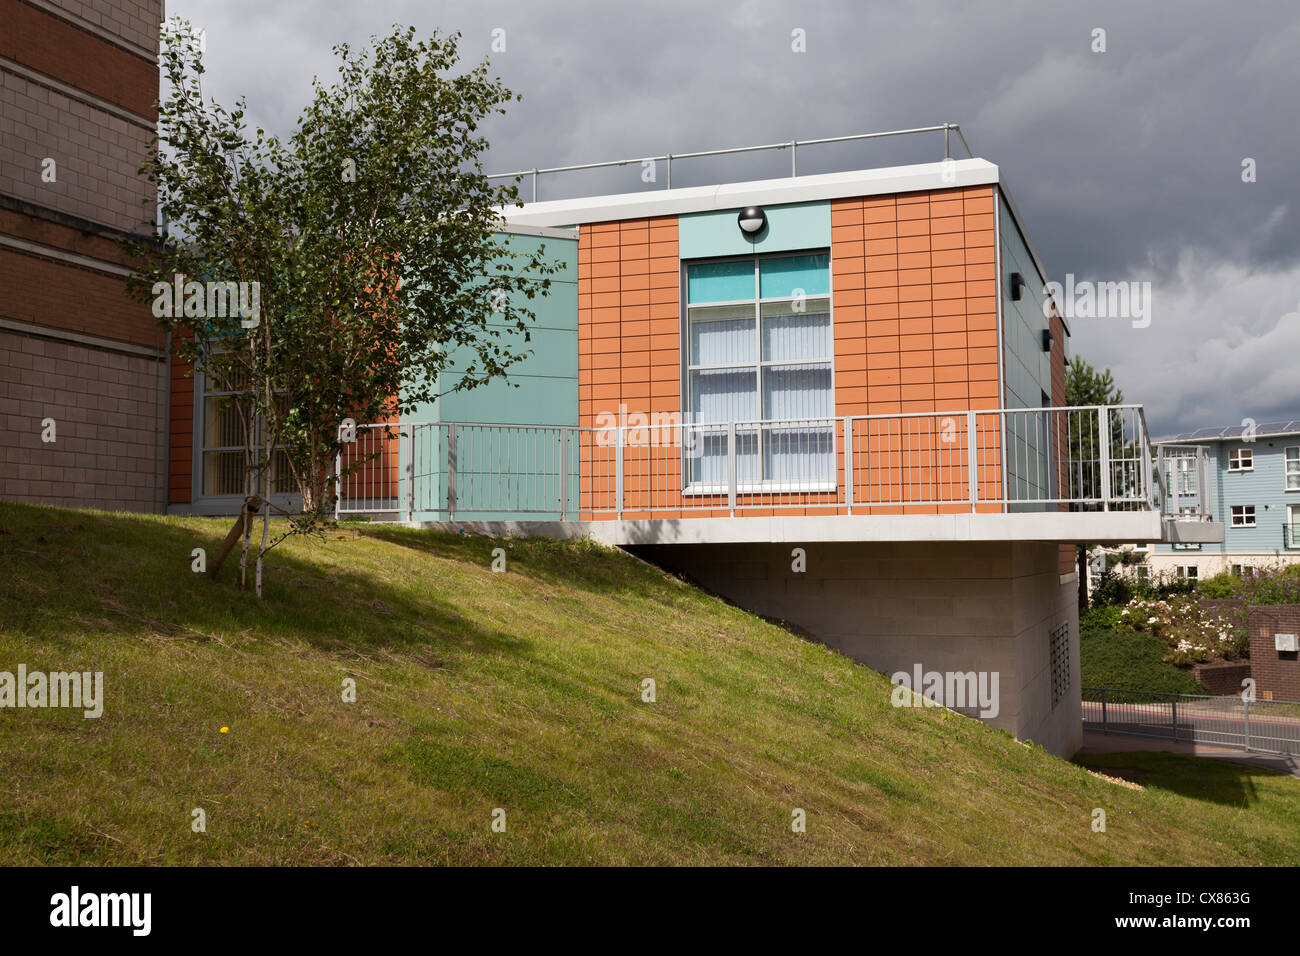 exterior of the Haematology department of Southampton General Hospital - Stock Image